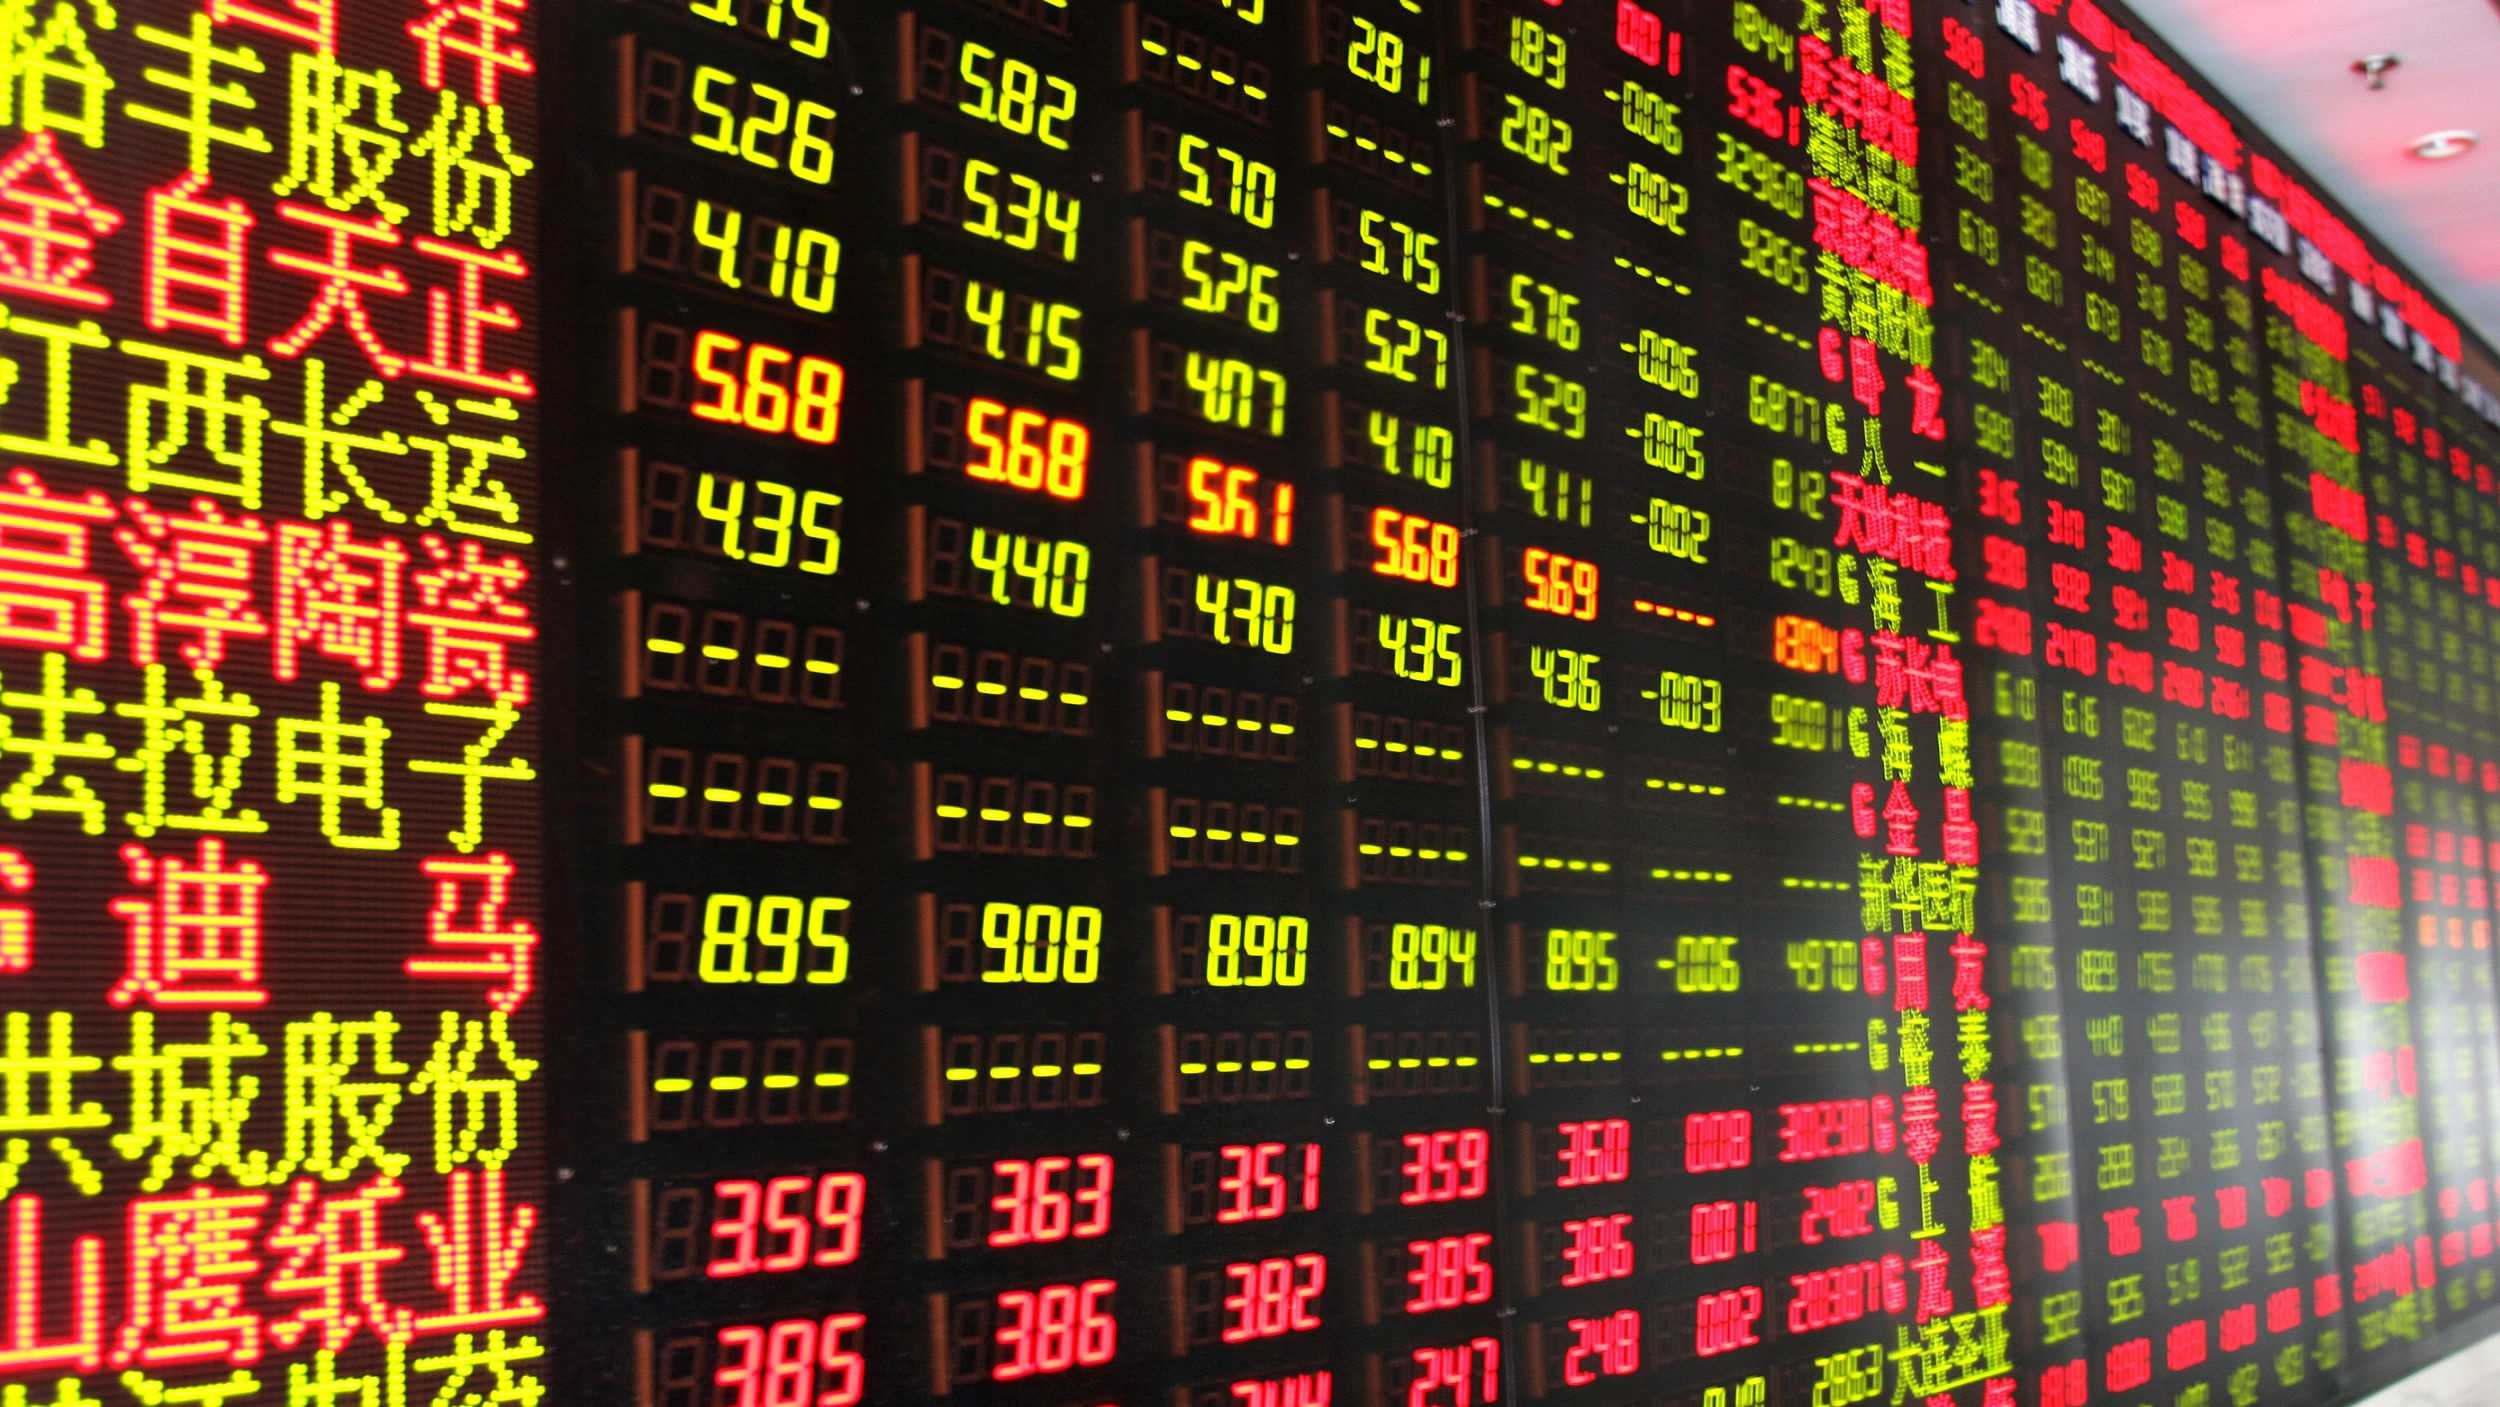 China's stock market sees around 1 mln new investors in Aug.